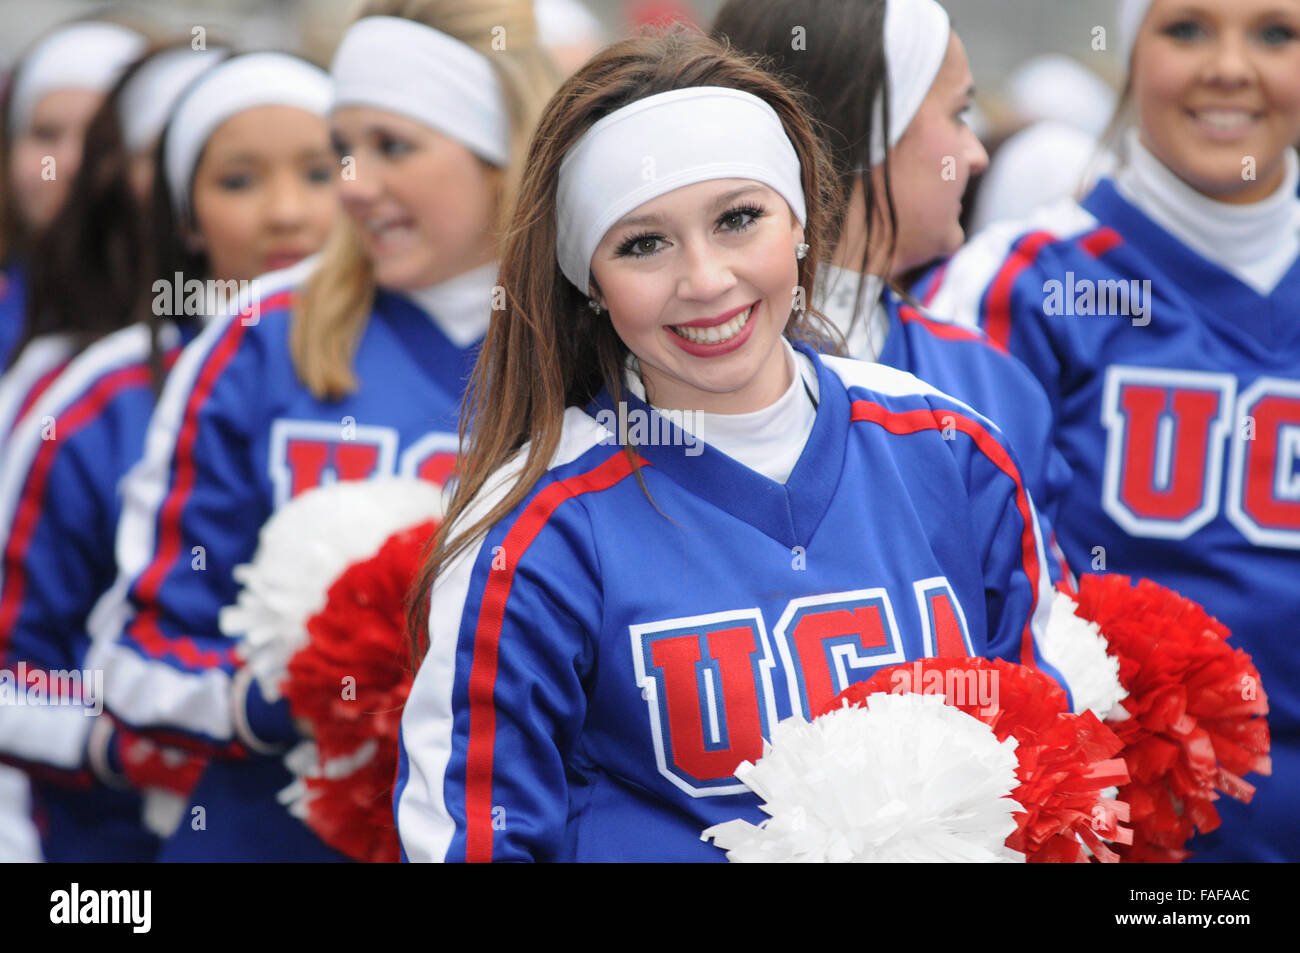 UCA Cheerleaders,London New Year Days Parade,Westminster,London UK - Stock Image